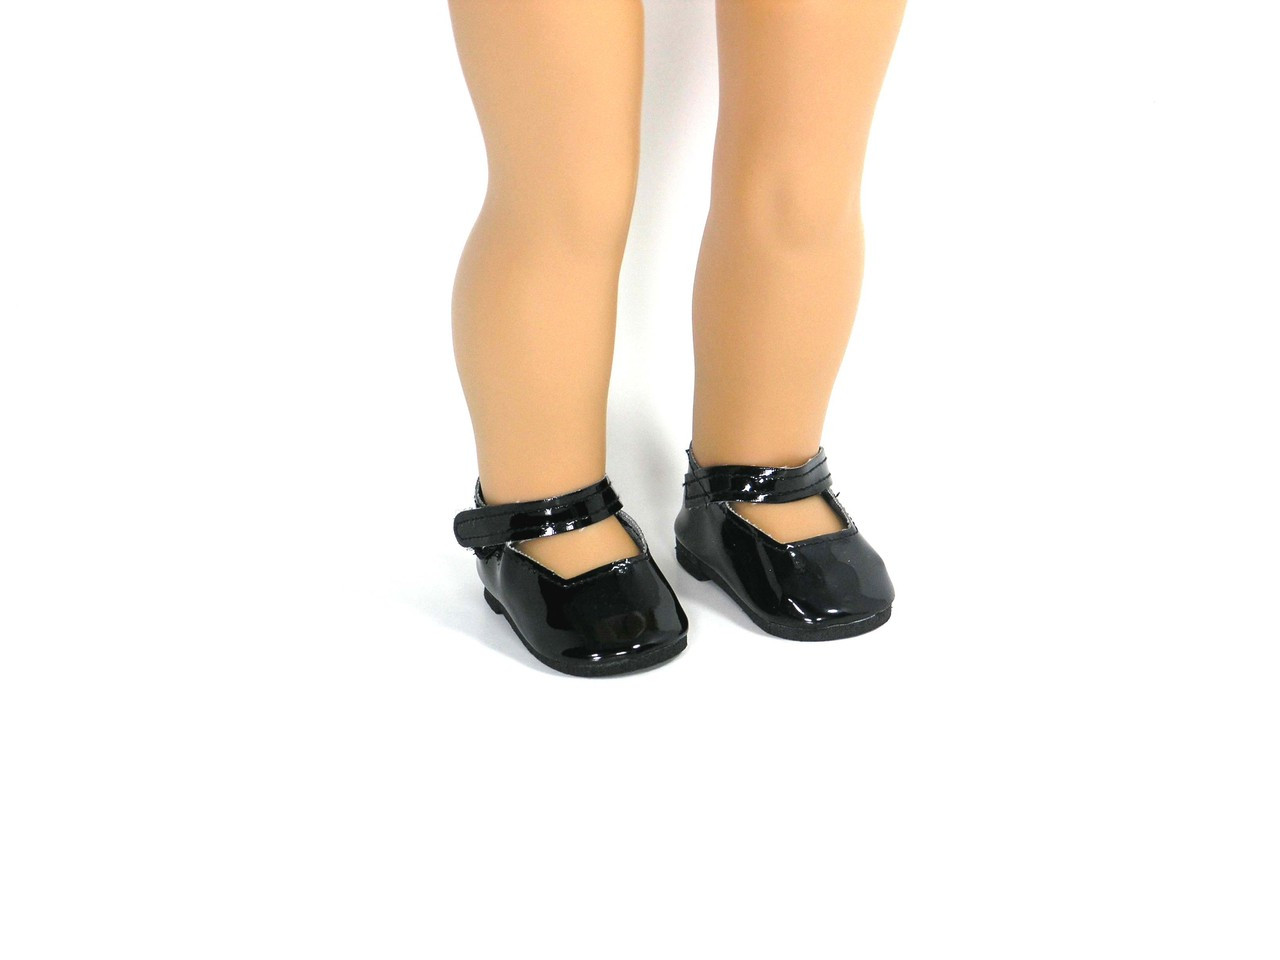 5607976753f51 Black Patent 18 inch Shoes for American Girl - Mary Jane Style